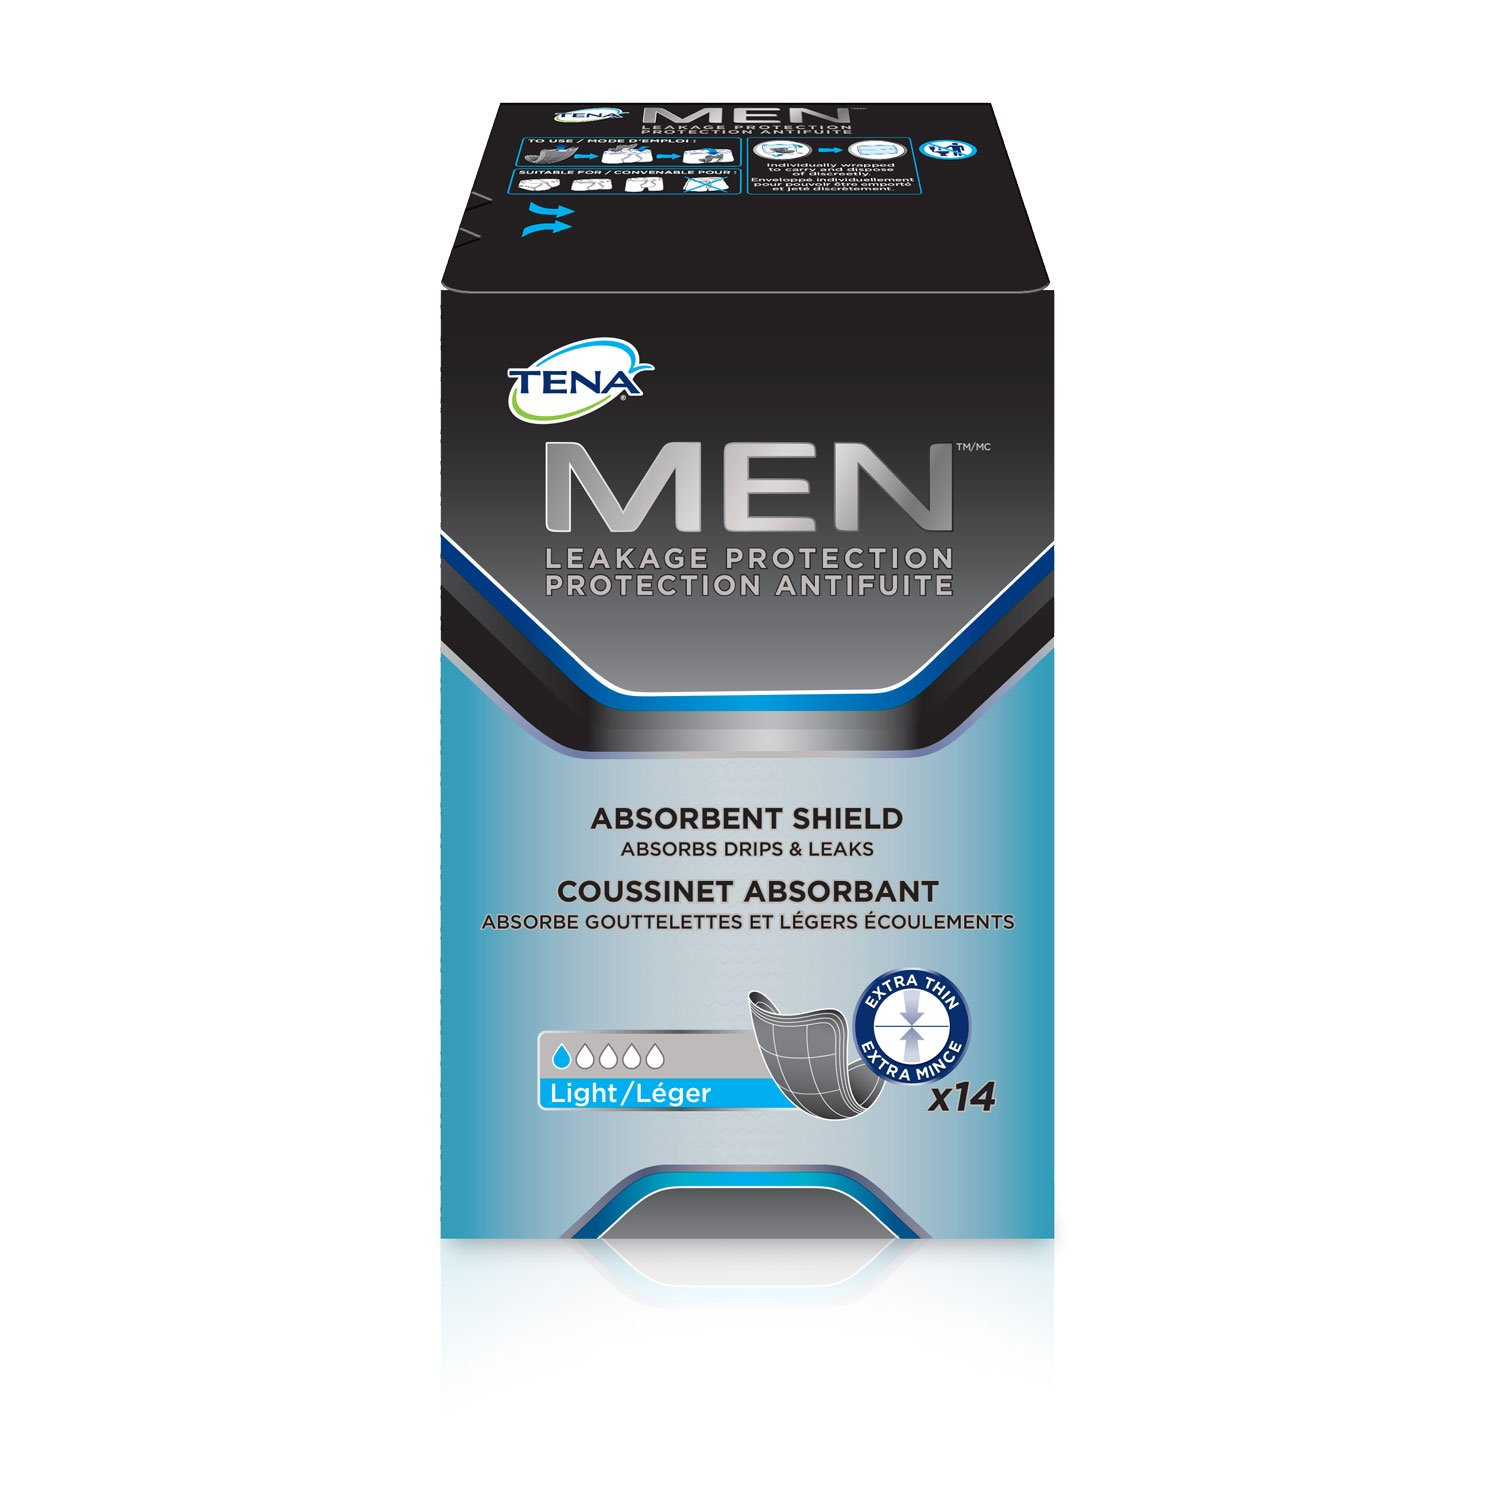 14 Count (1Package) Tena Incontinence Shields for Men, Light Absorbency